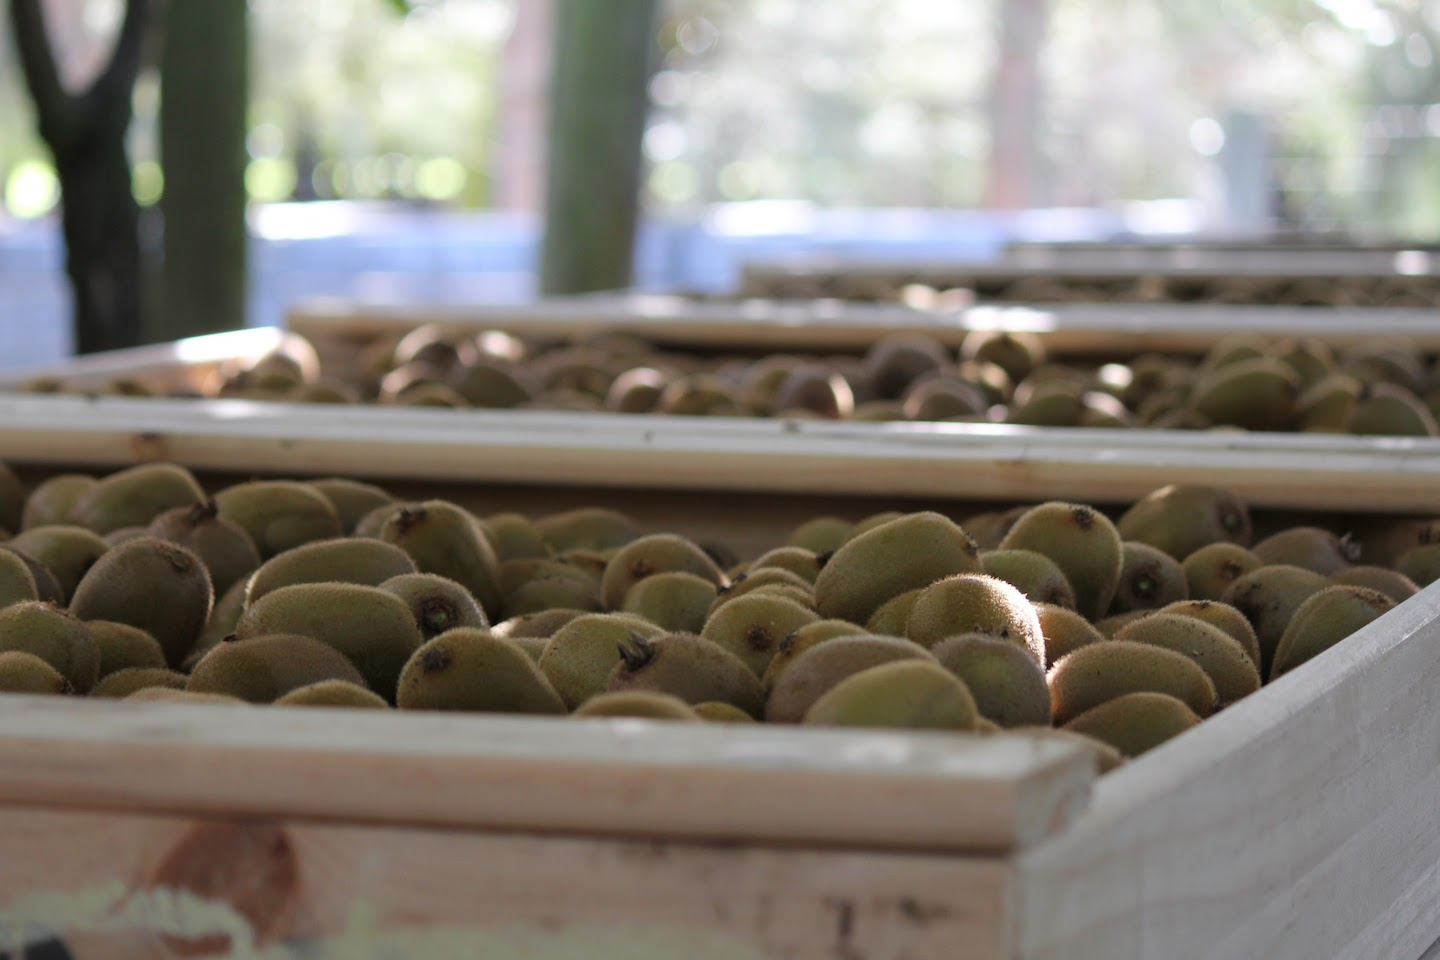 Bins of kiwifruits